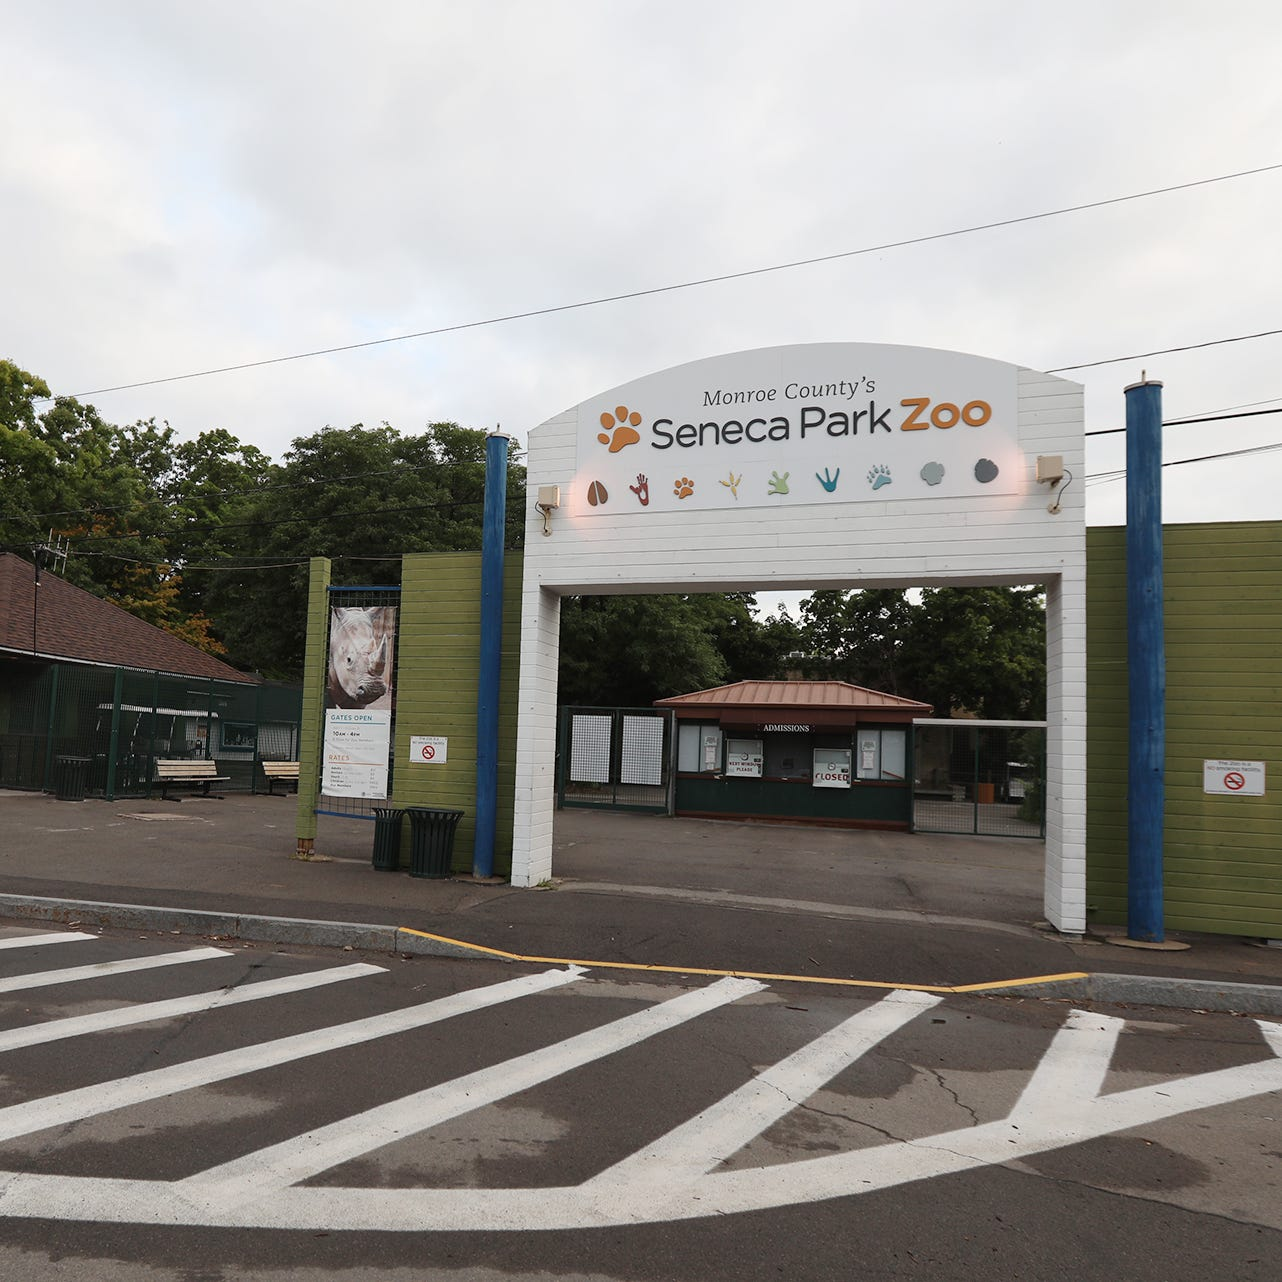 Former zoo society official claims age discrimination behind dismissal